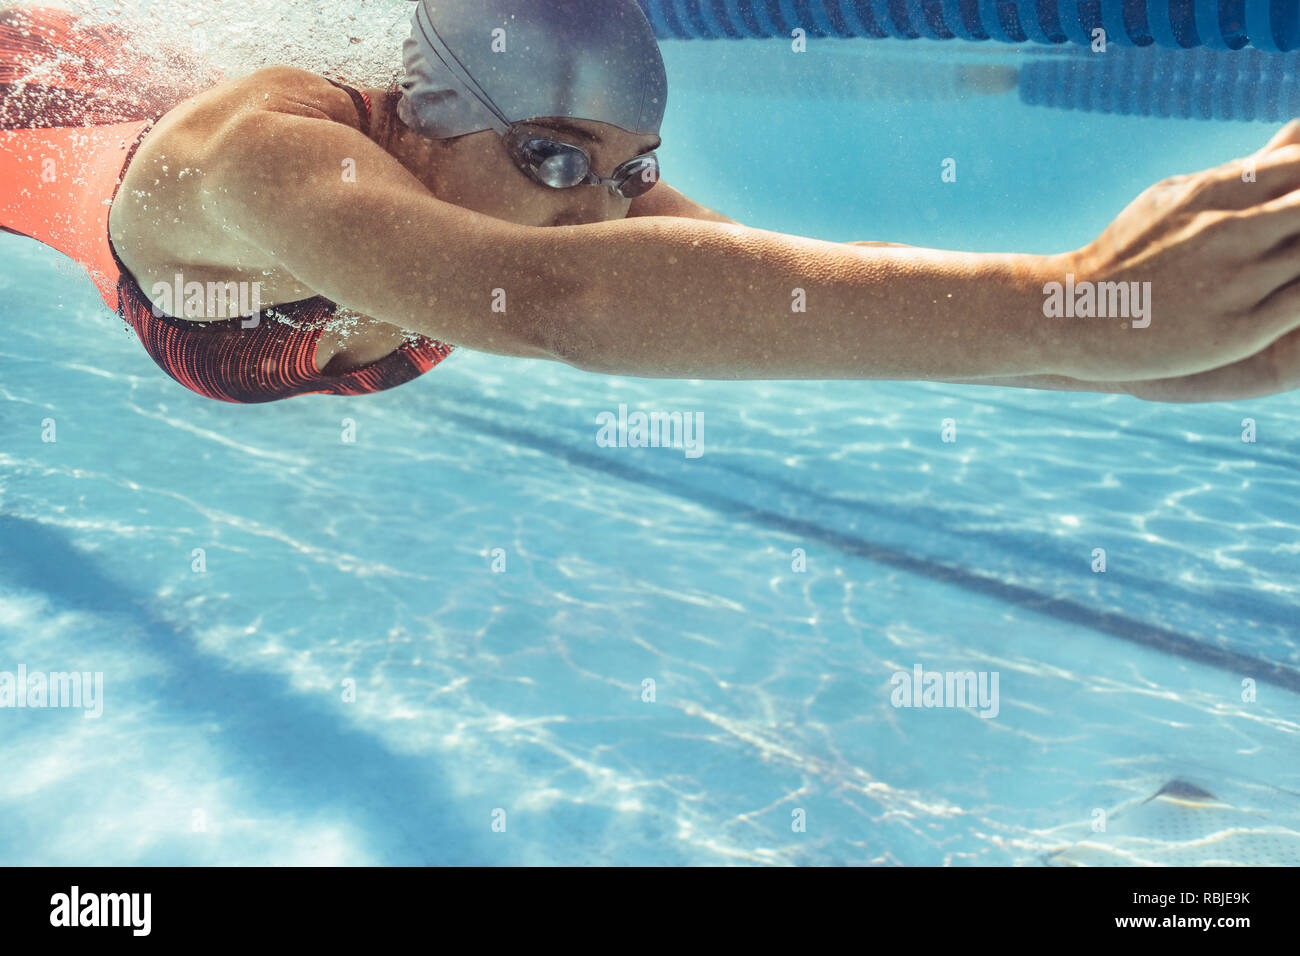 Underwater shot of female swimmer swimming in pool. Young woman swimming in a sport pool. Stock Photo